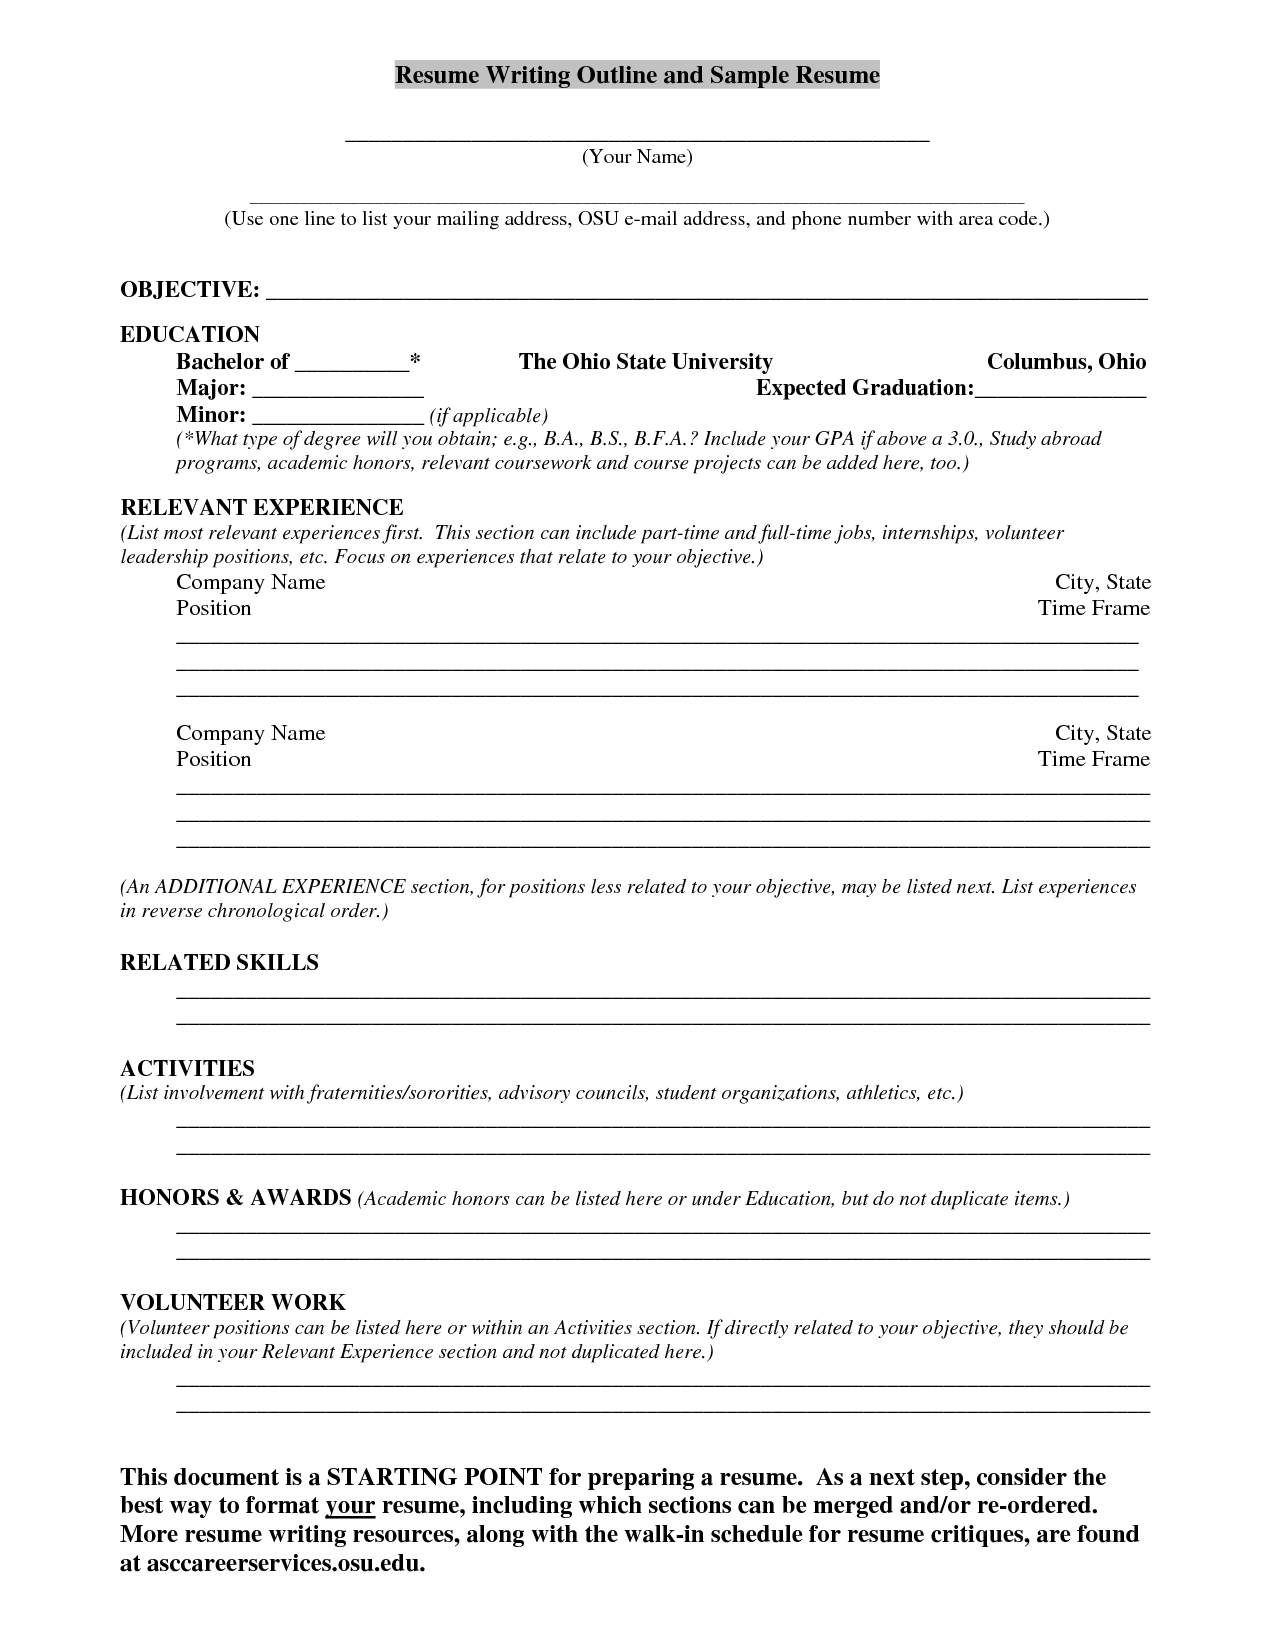 Resume Writing Outline And Sample Resume Resume Examples Writing Outline Resume